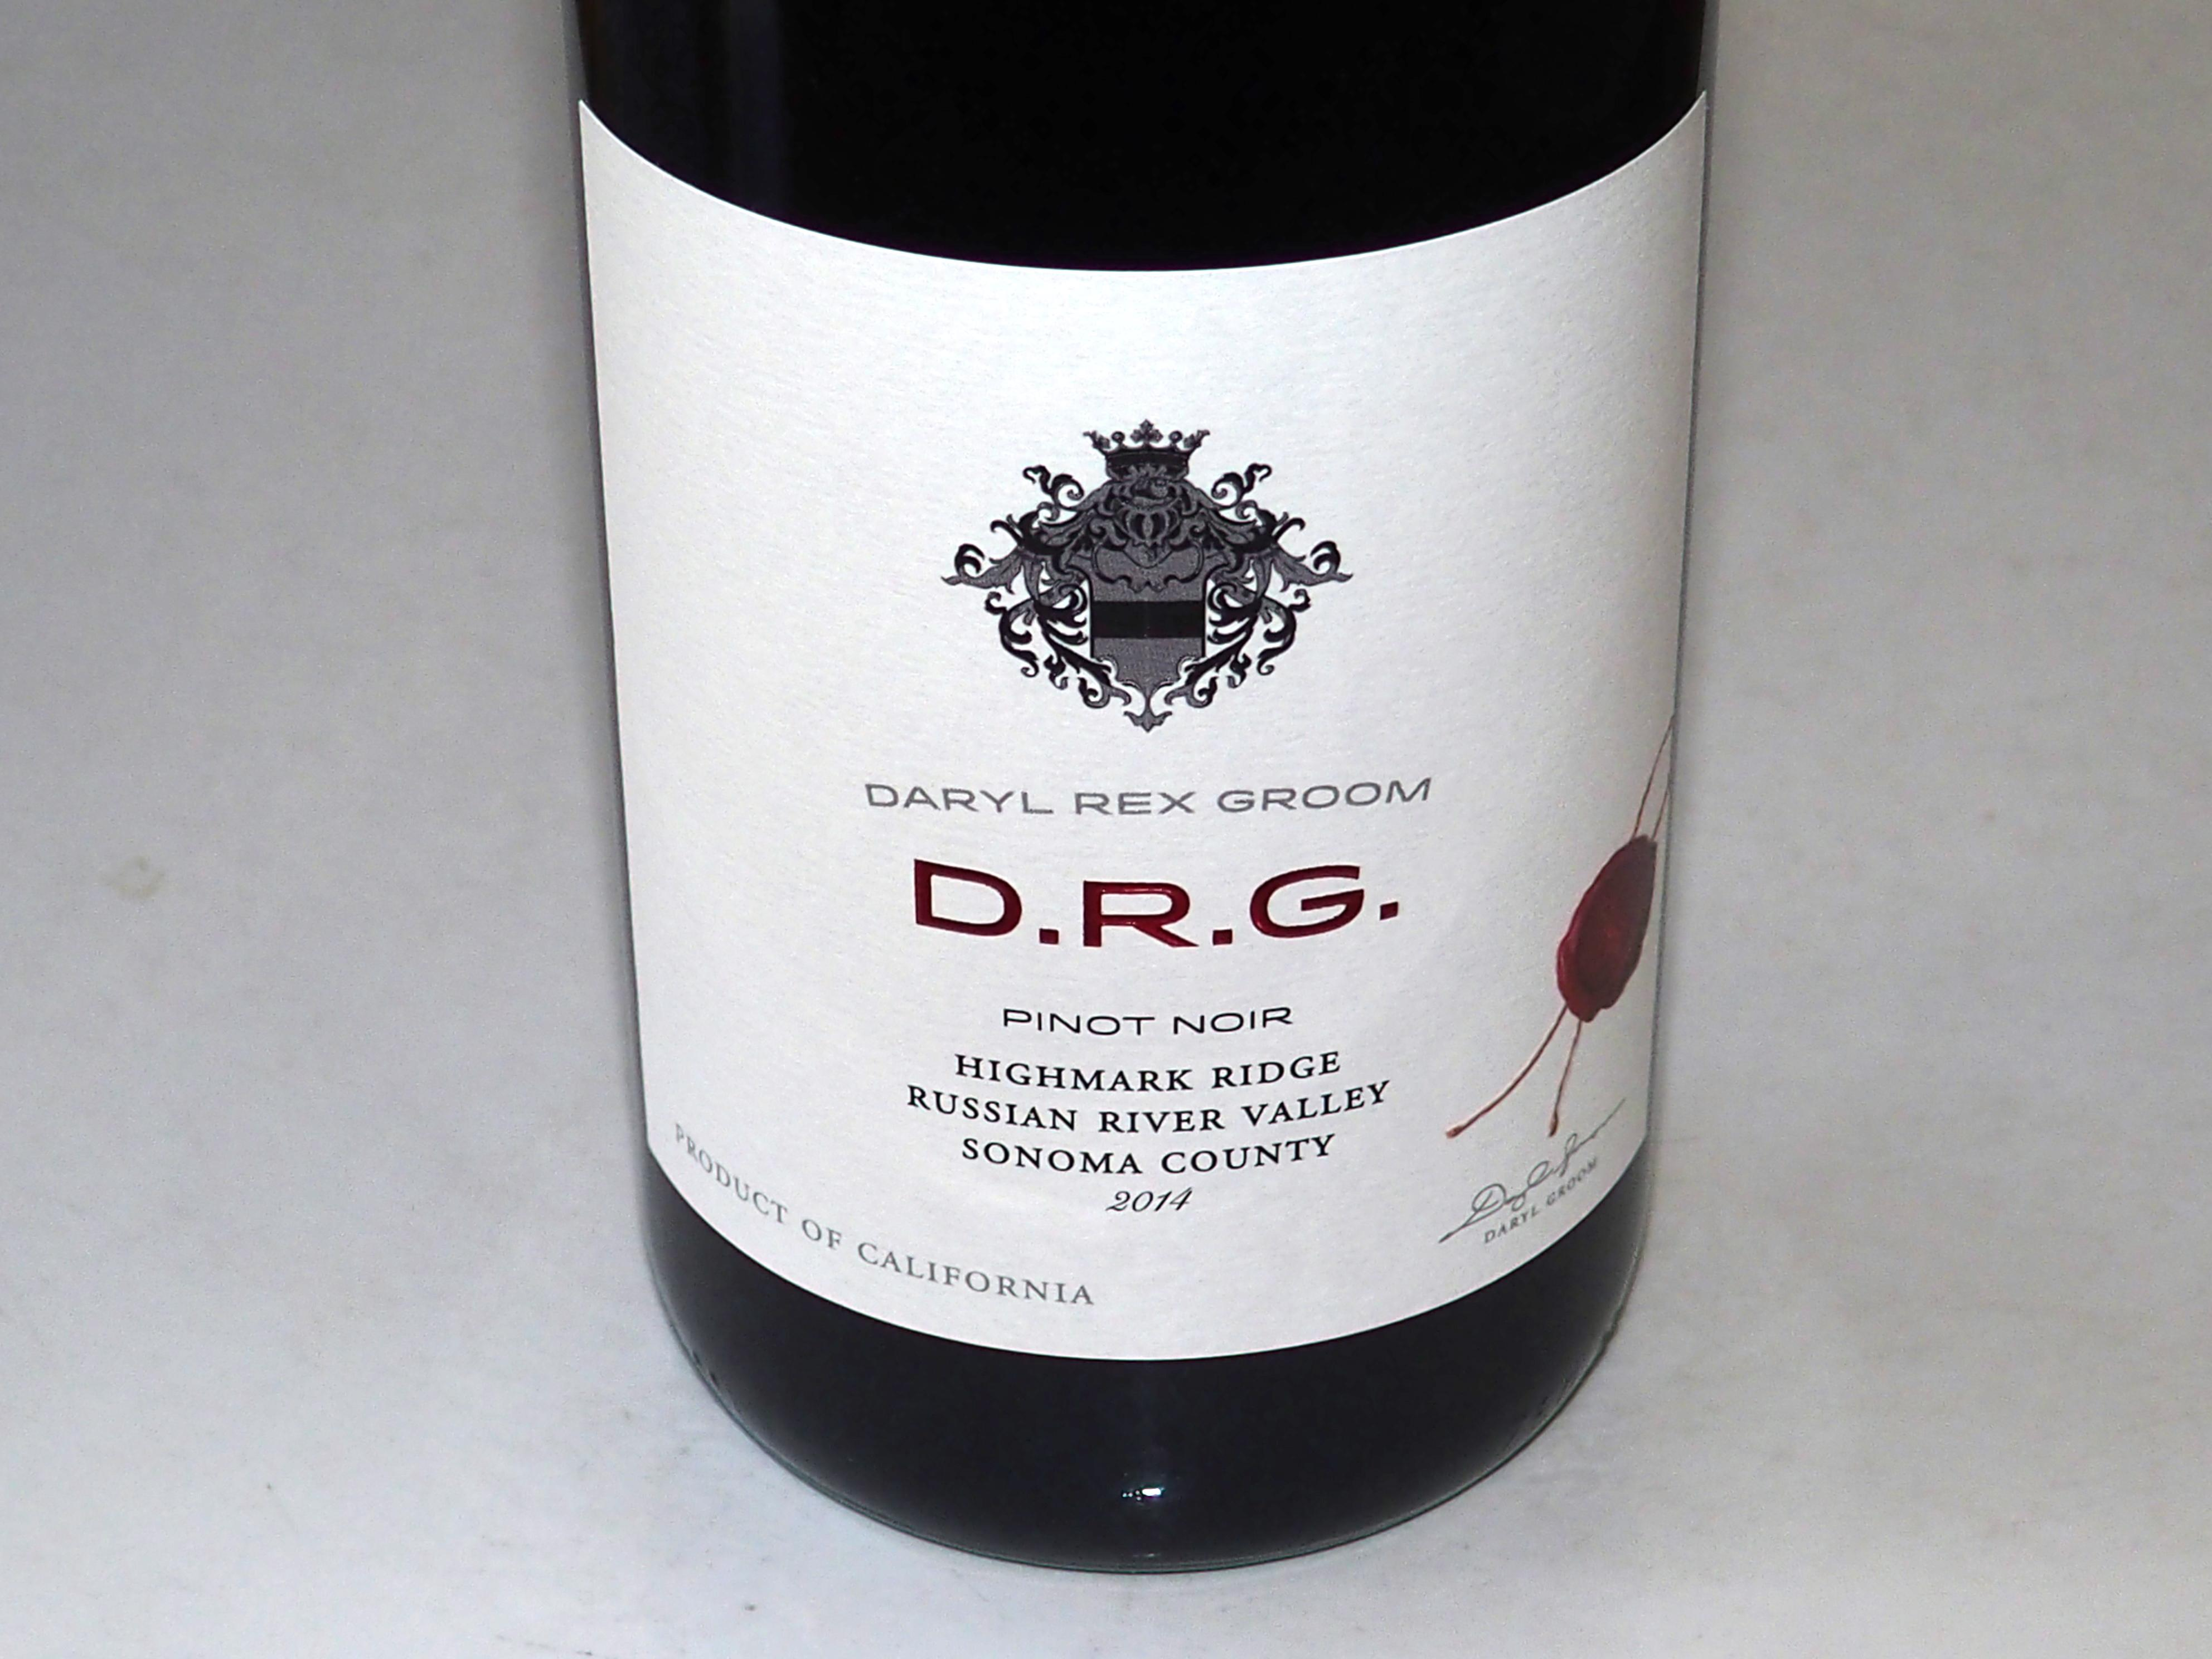 Daryl Rex Groom D.R.G. Wines